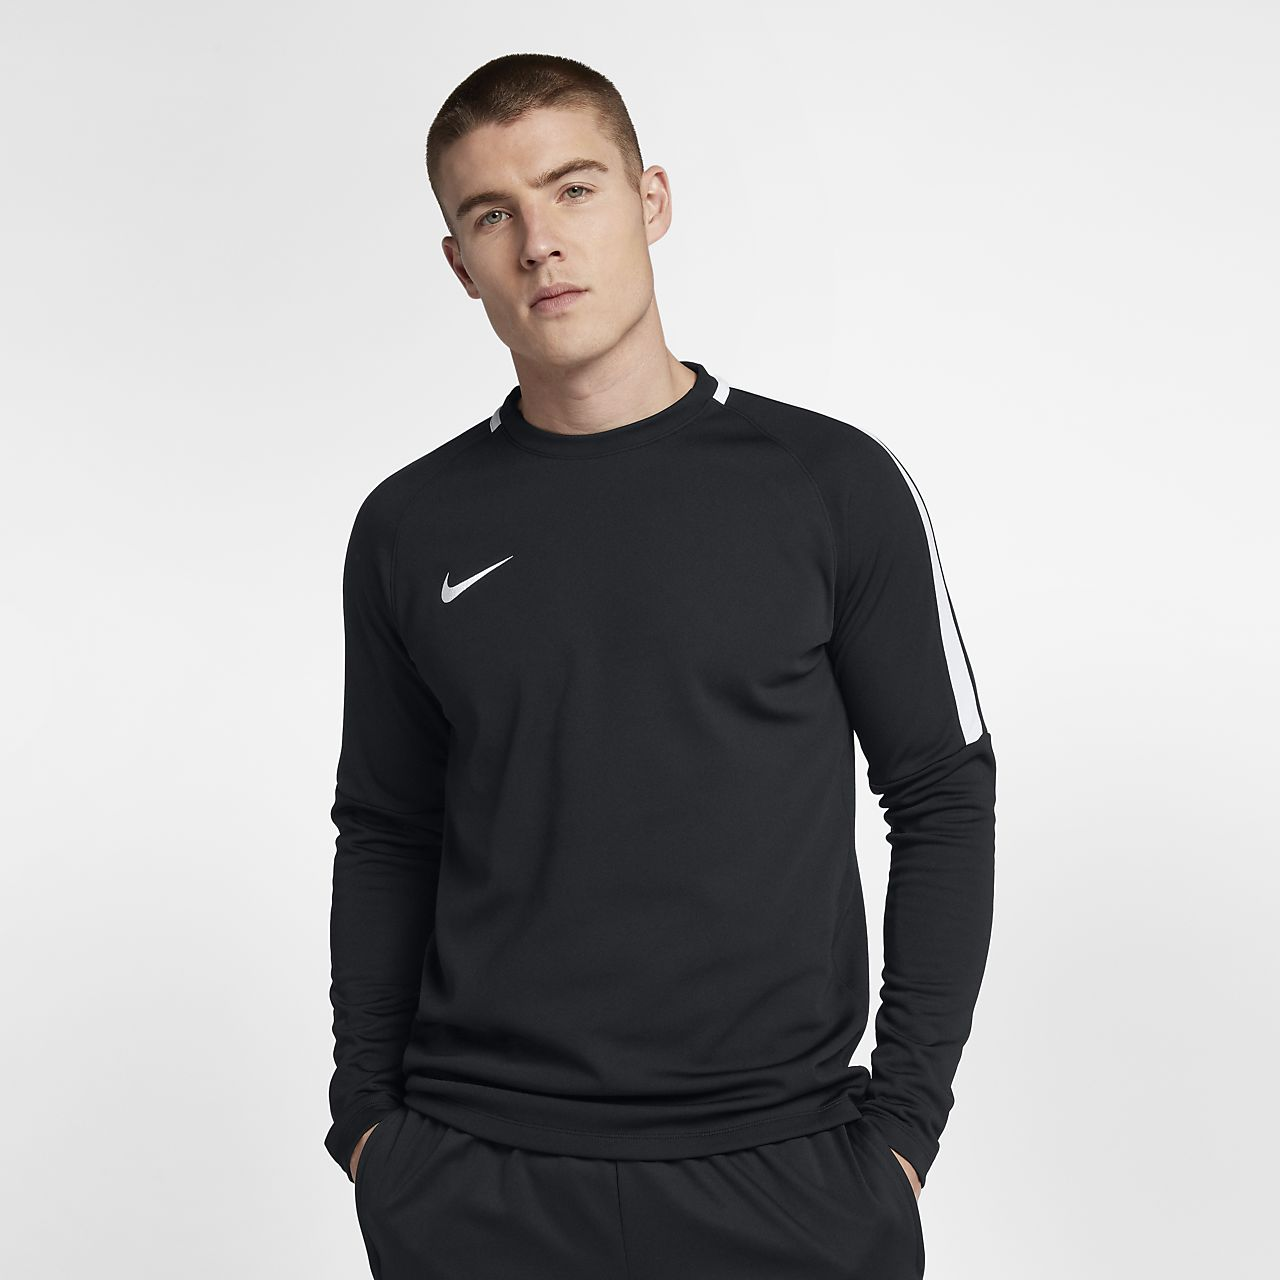 Shirt Nike De Fit Academy Pour Football Dri Ch Homme Sweat 7HR4xw4